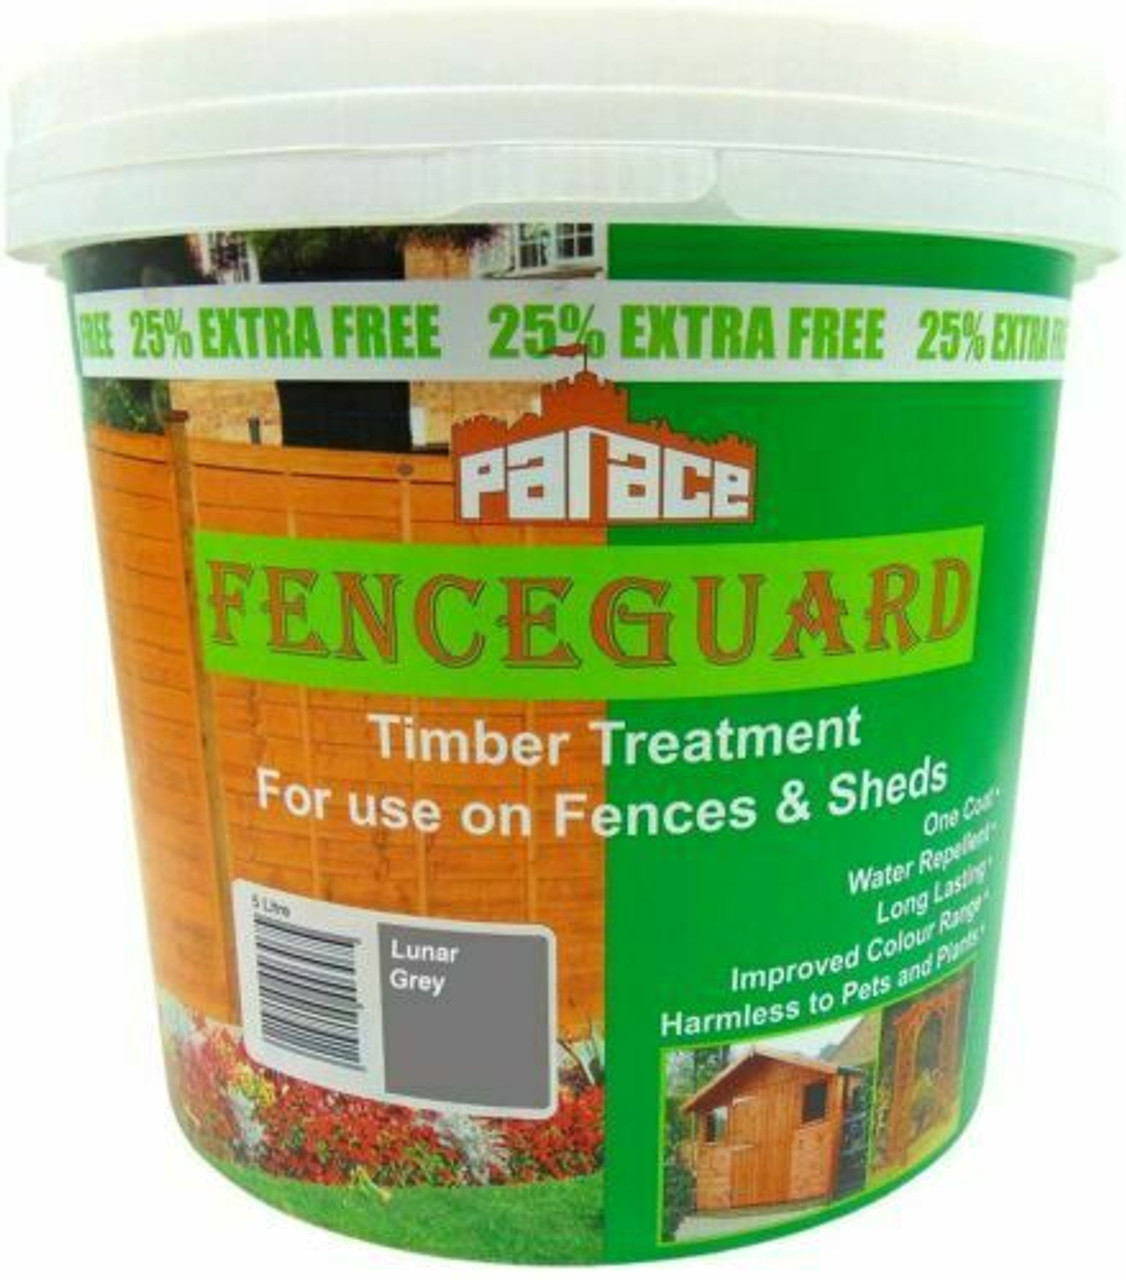 Palace Fenceguard brush on timber treatment - Luna Grey - LOCAL DELIVERY ONLY